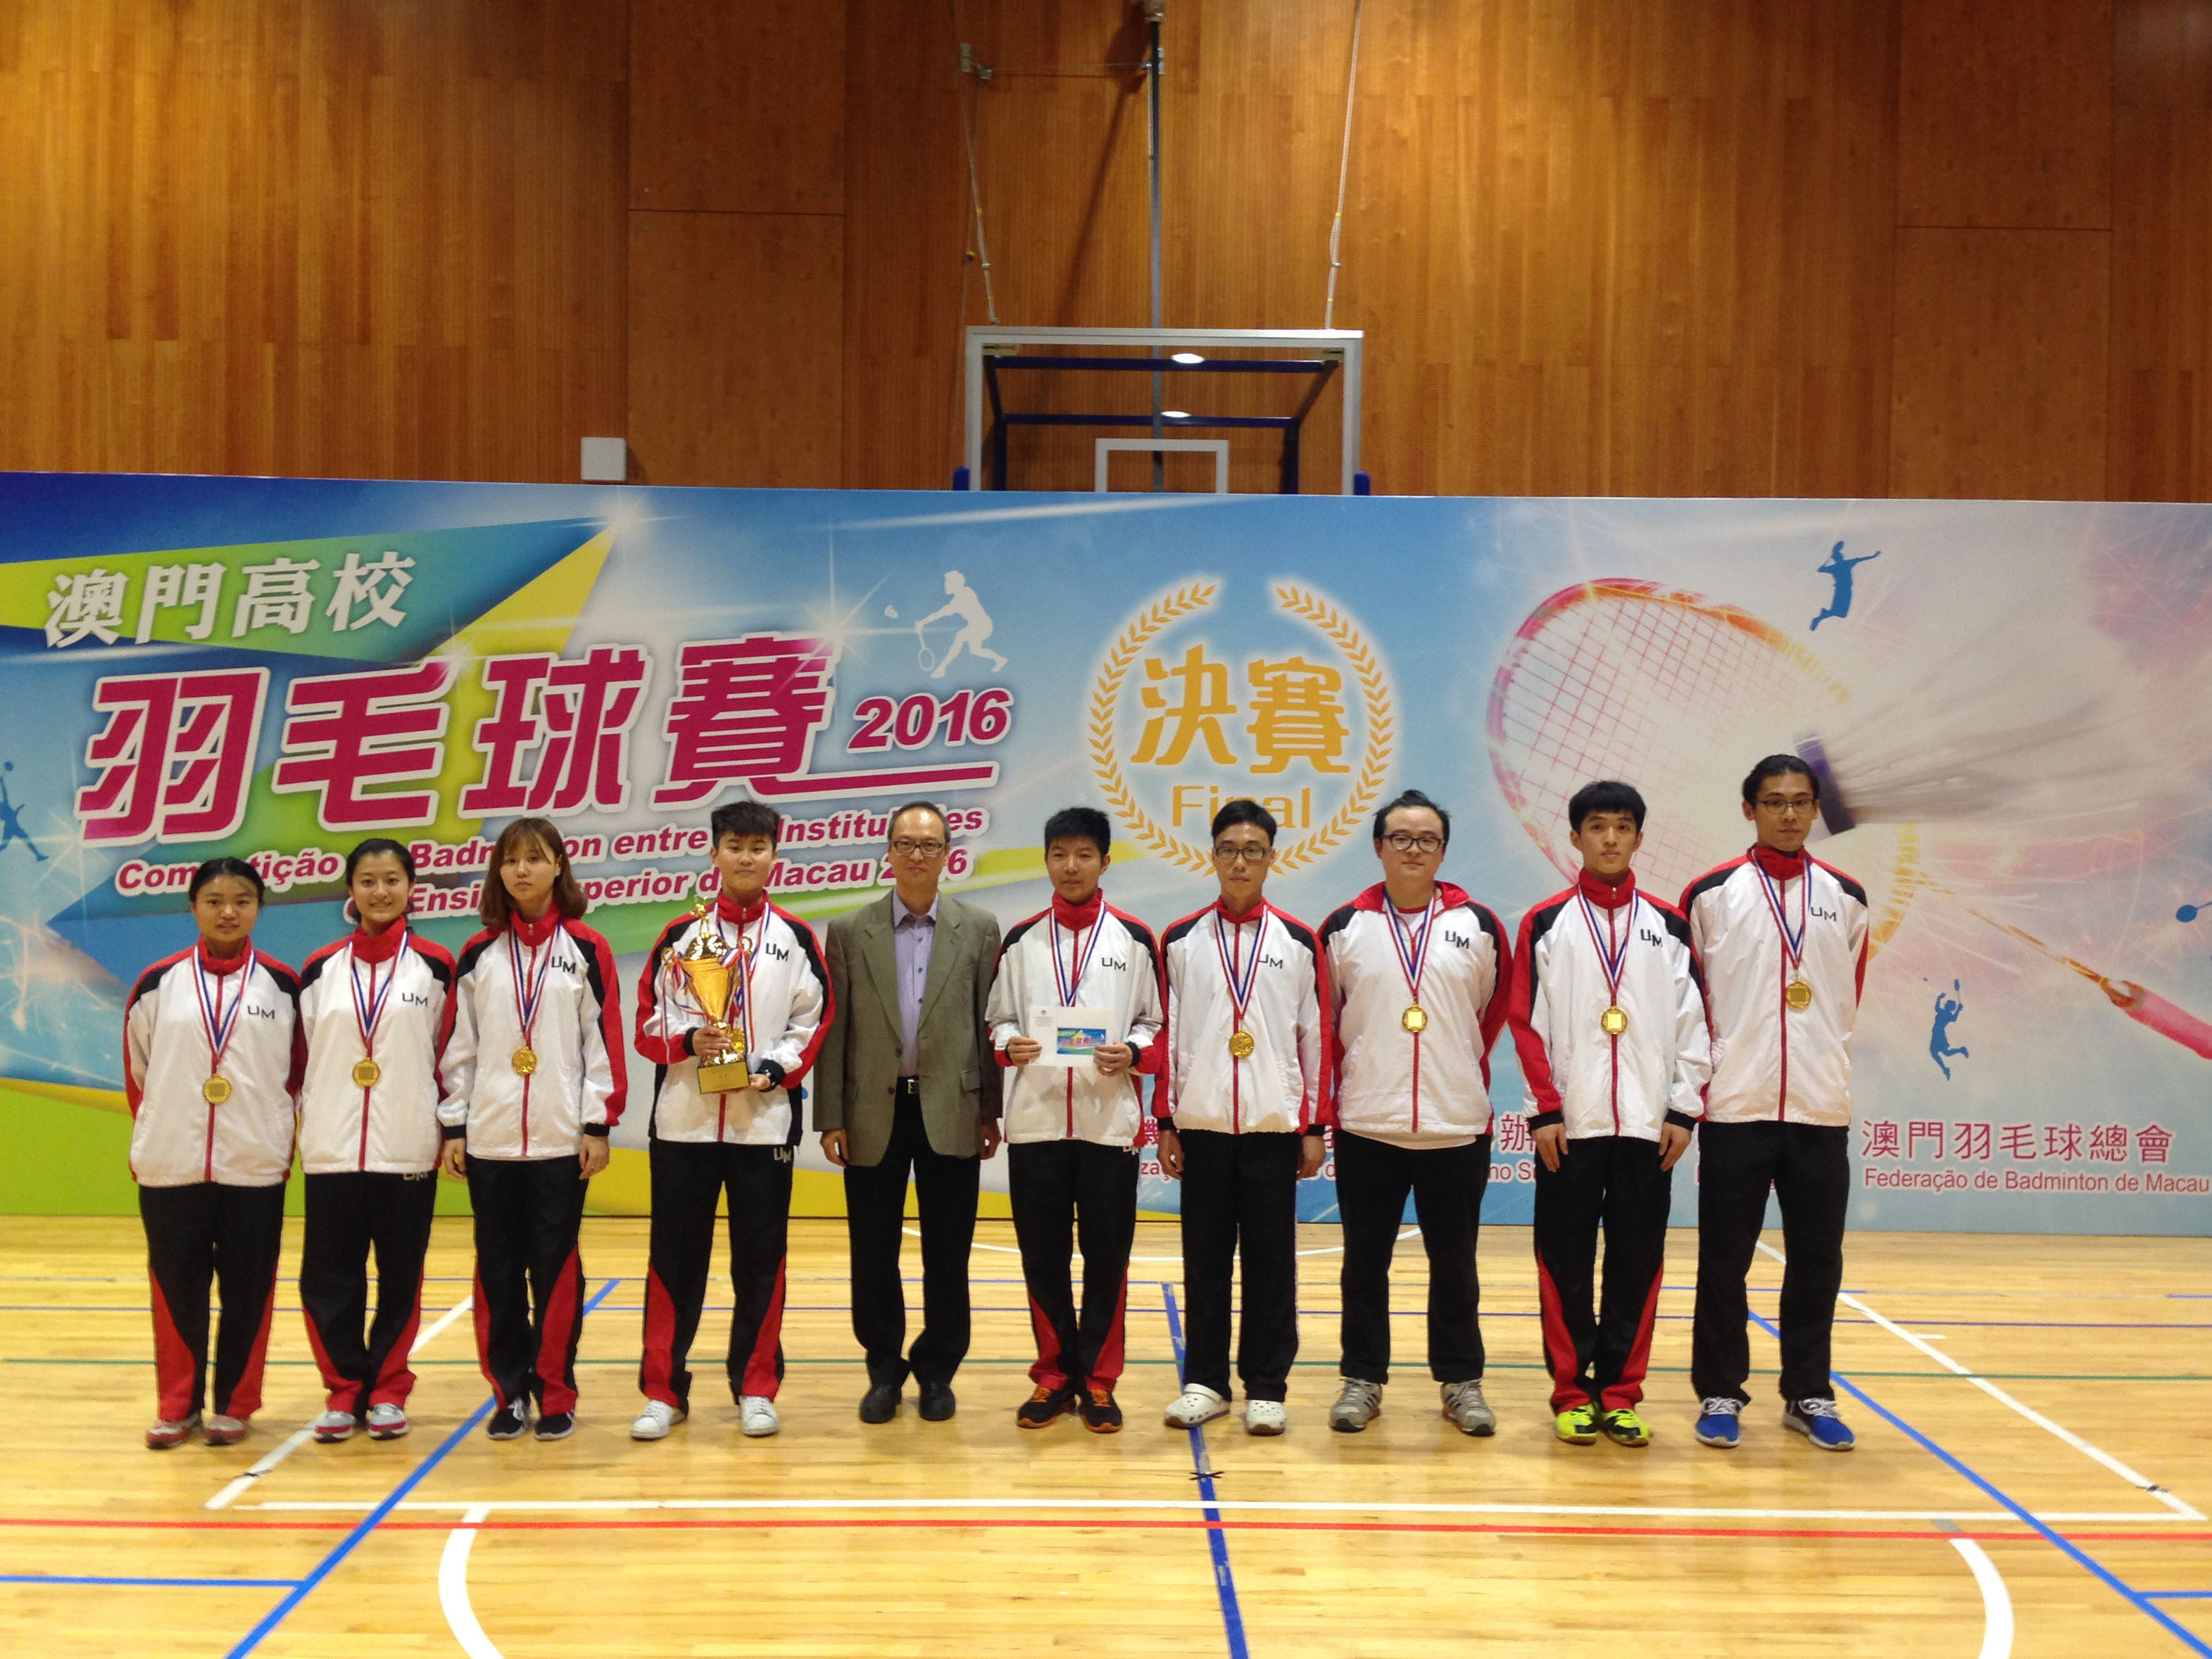 UM's Badminton Team wins the championship at a local inter-varsity badminton competition